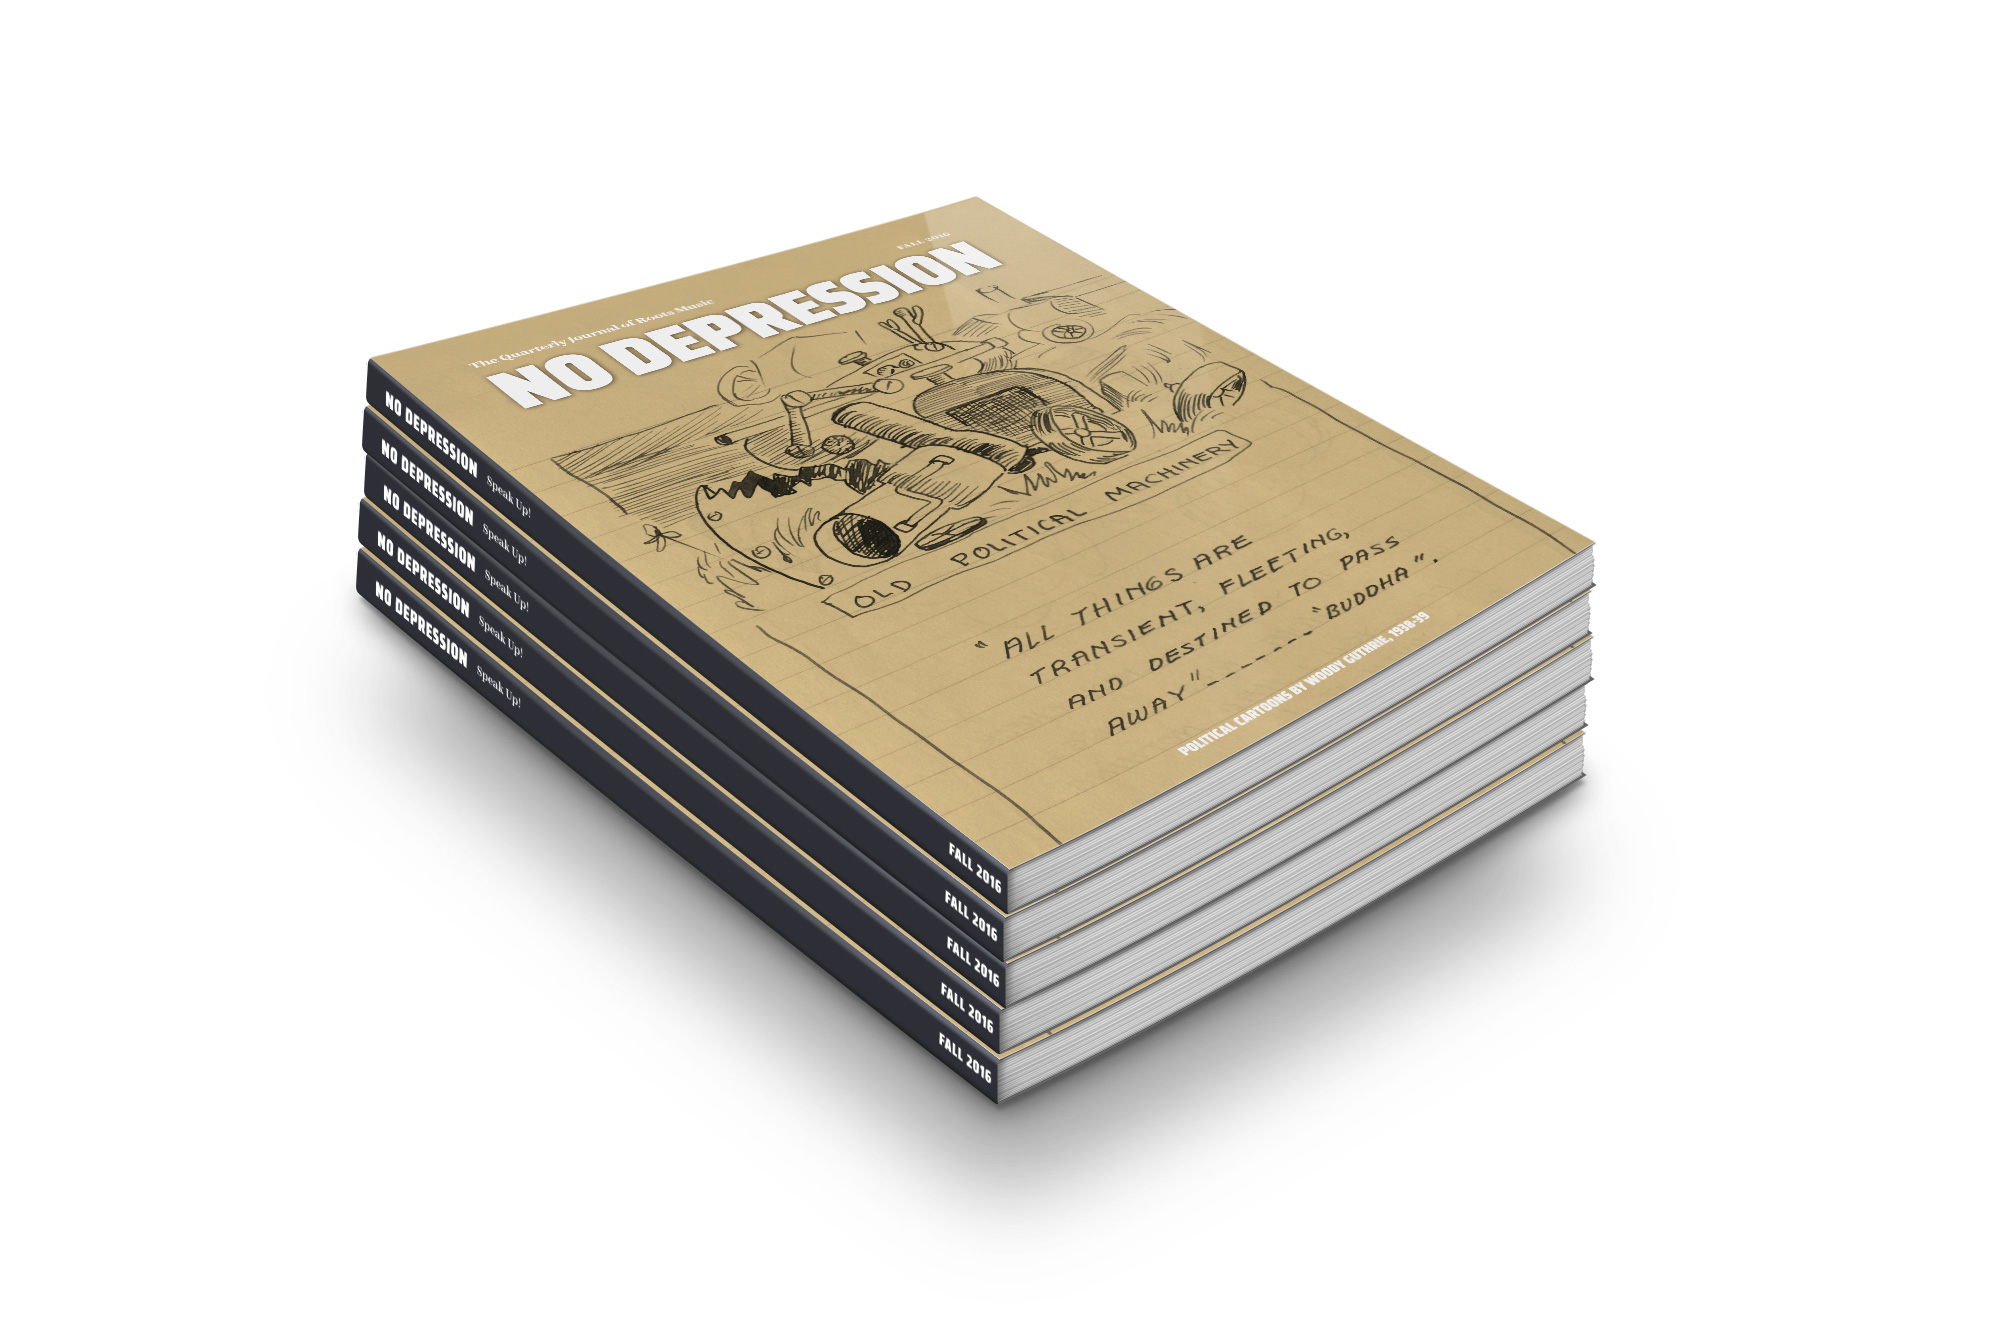 I design No Depression, a national roots music magazine. My first issue was the Fall 2016 issue.  Visit http://nodepression.com/journal to order your copies.